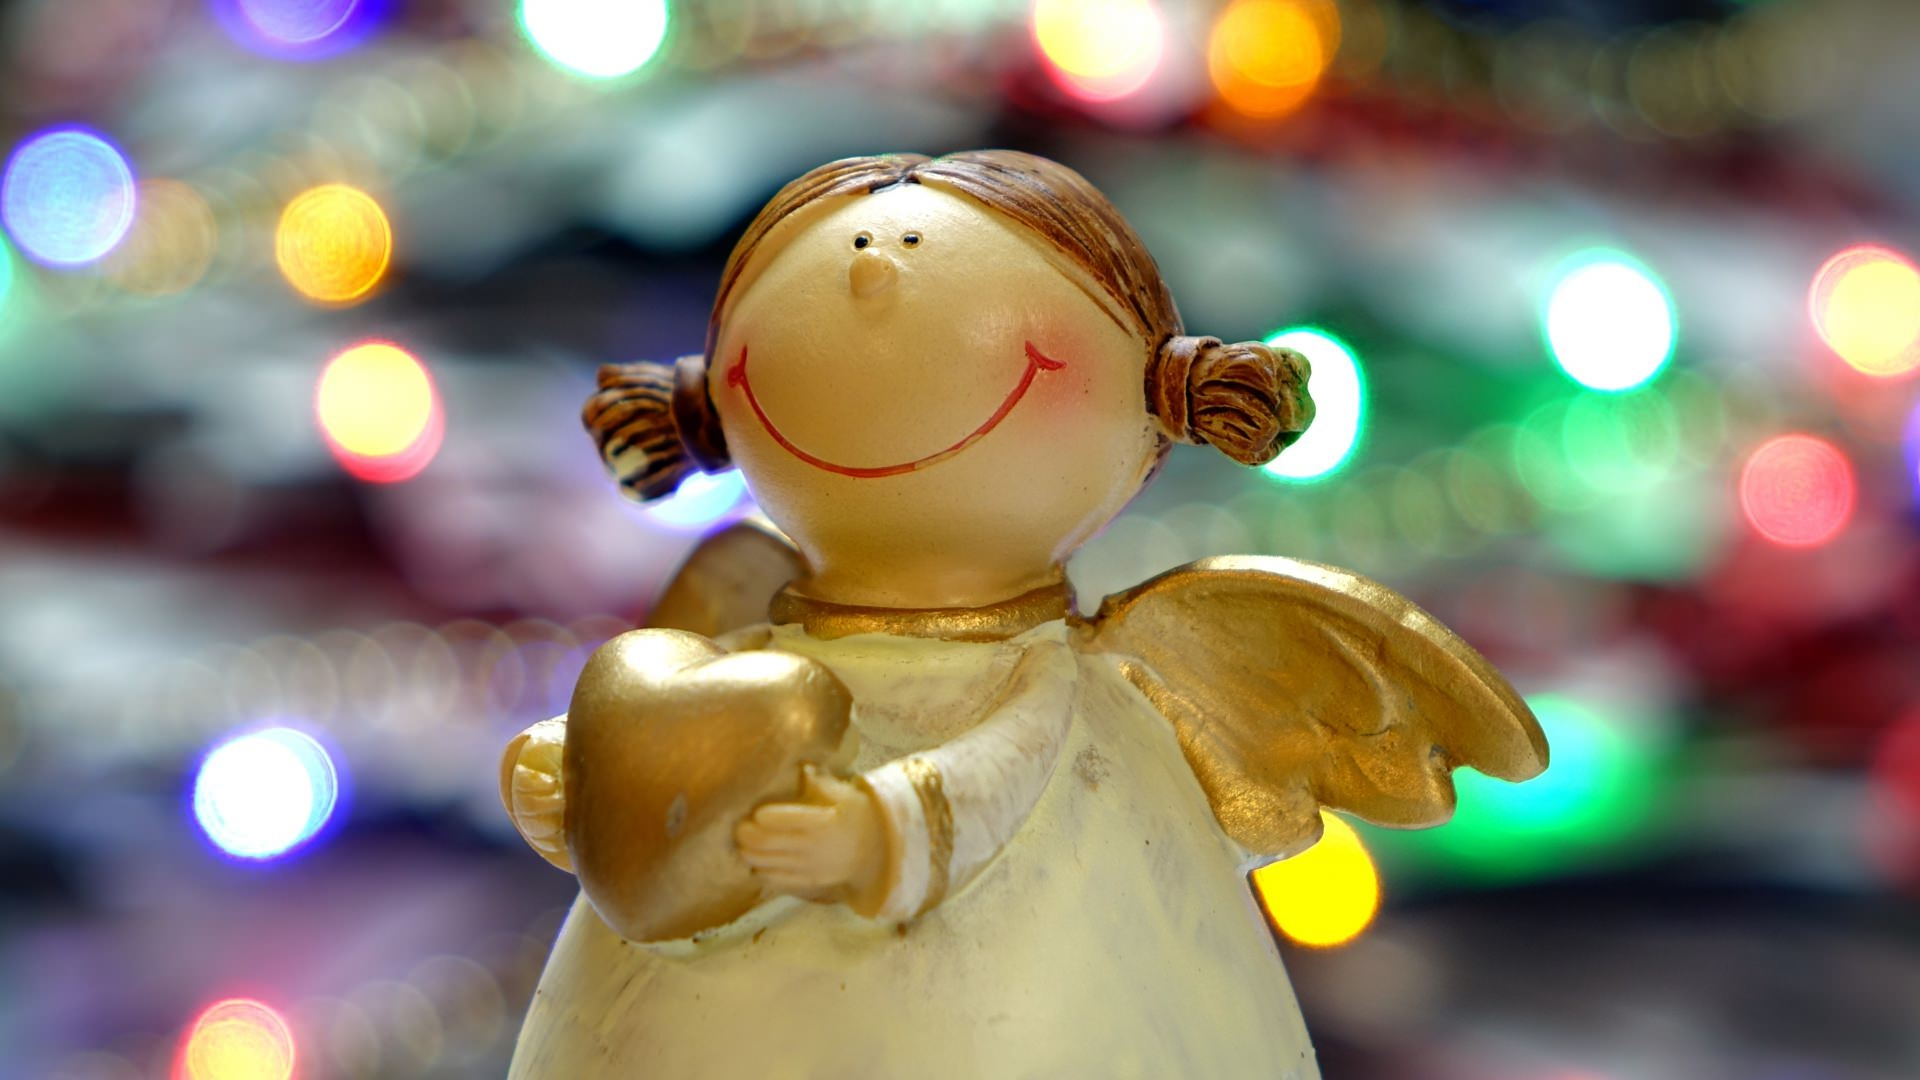 Christmas Angel Statue Wallpaper